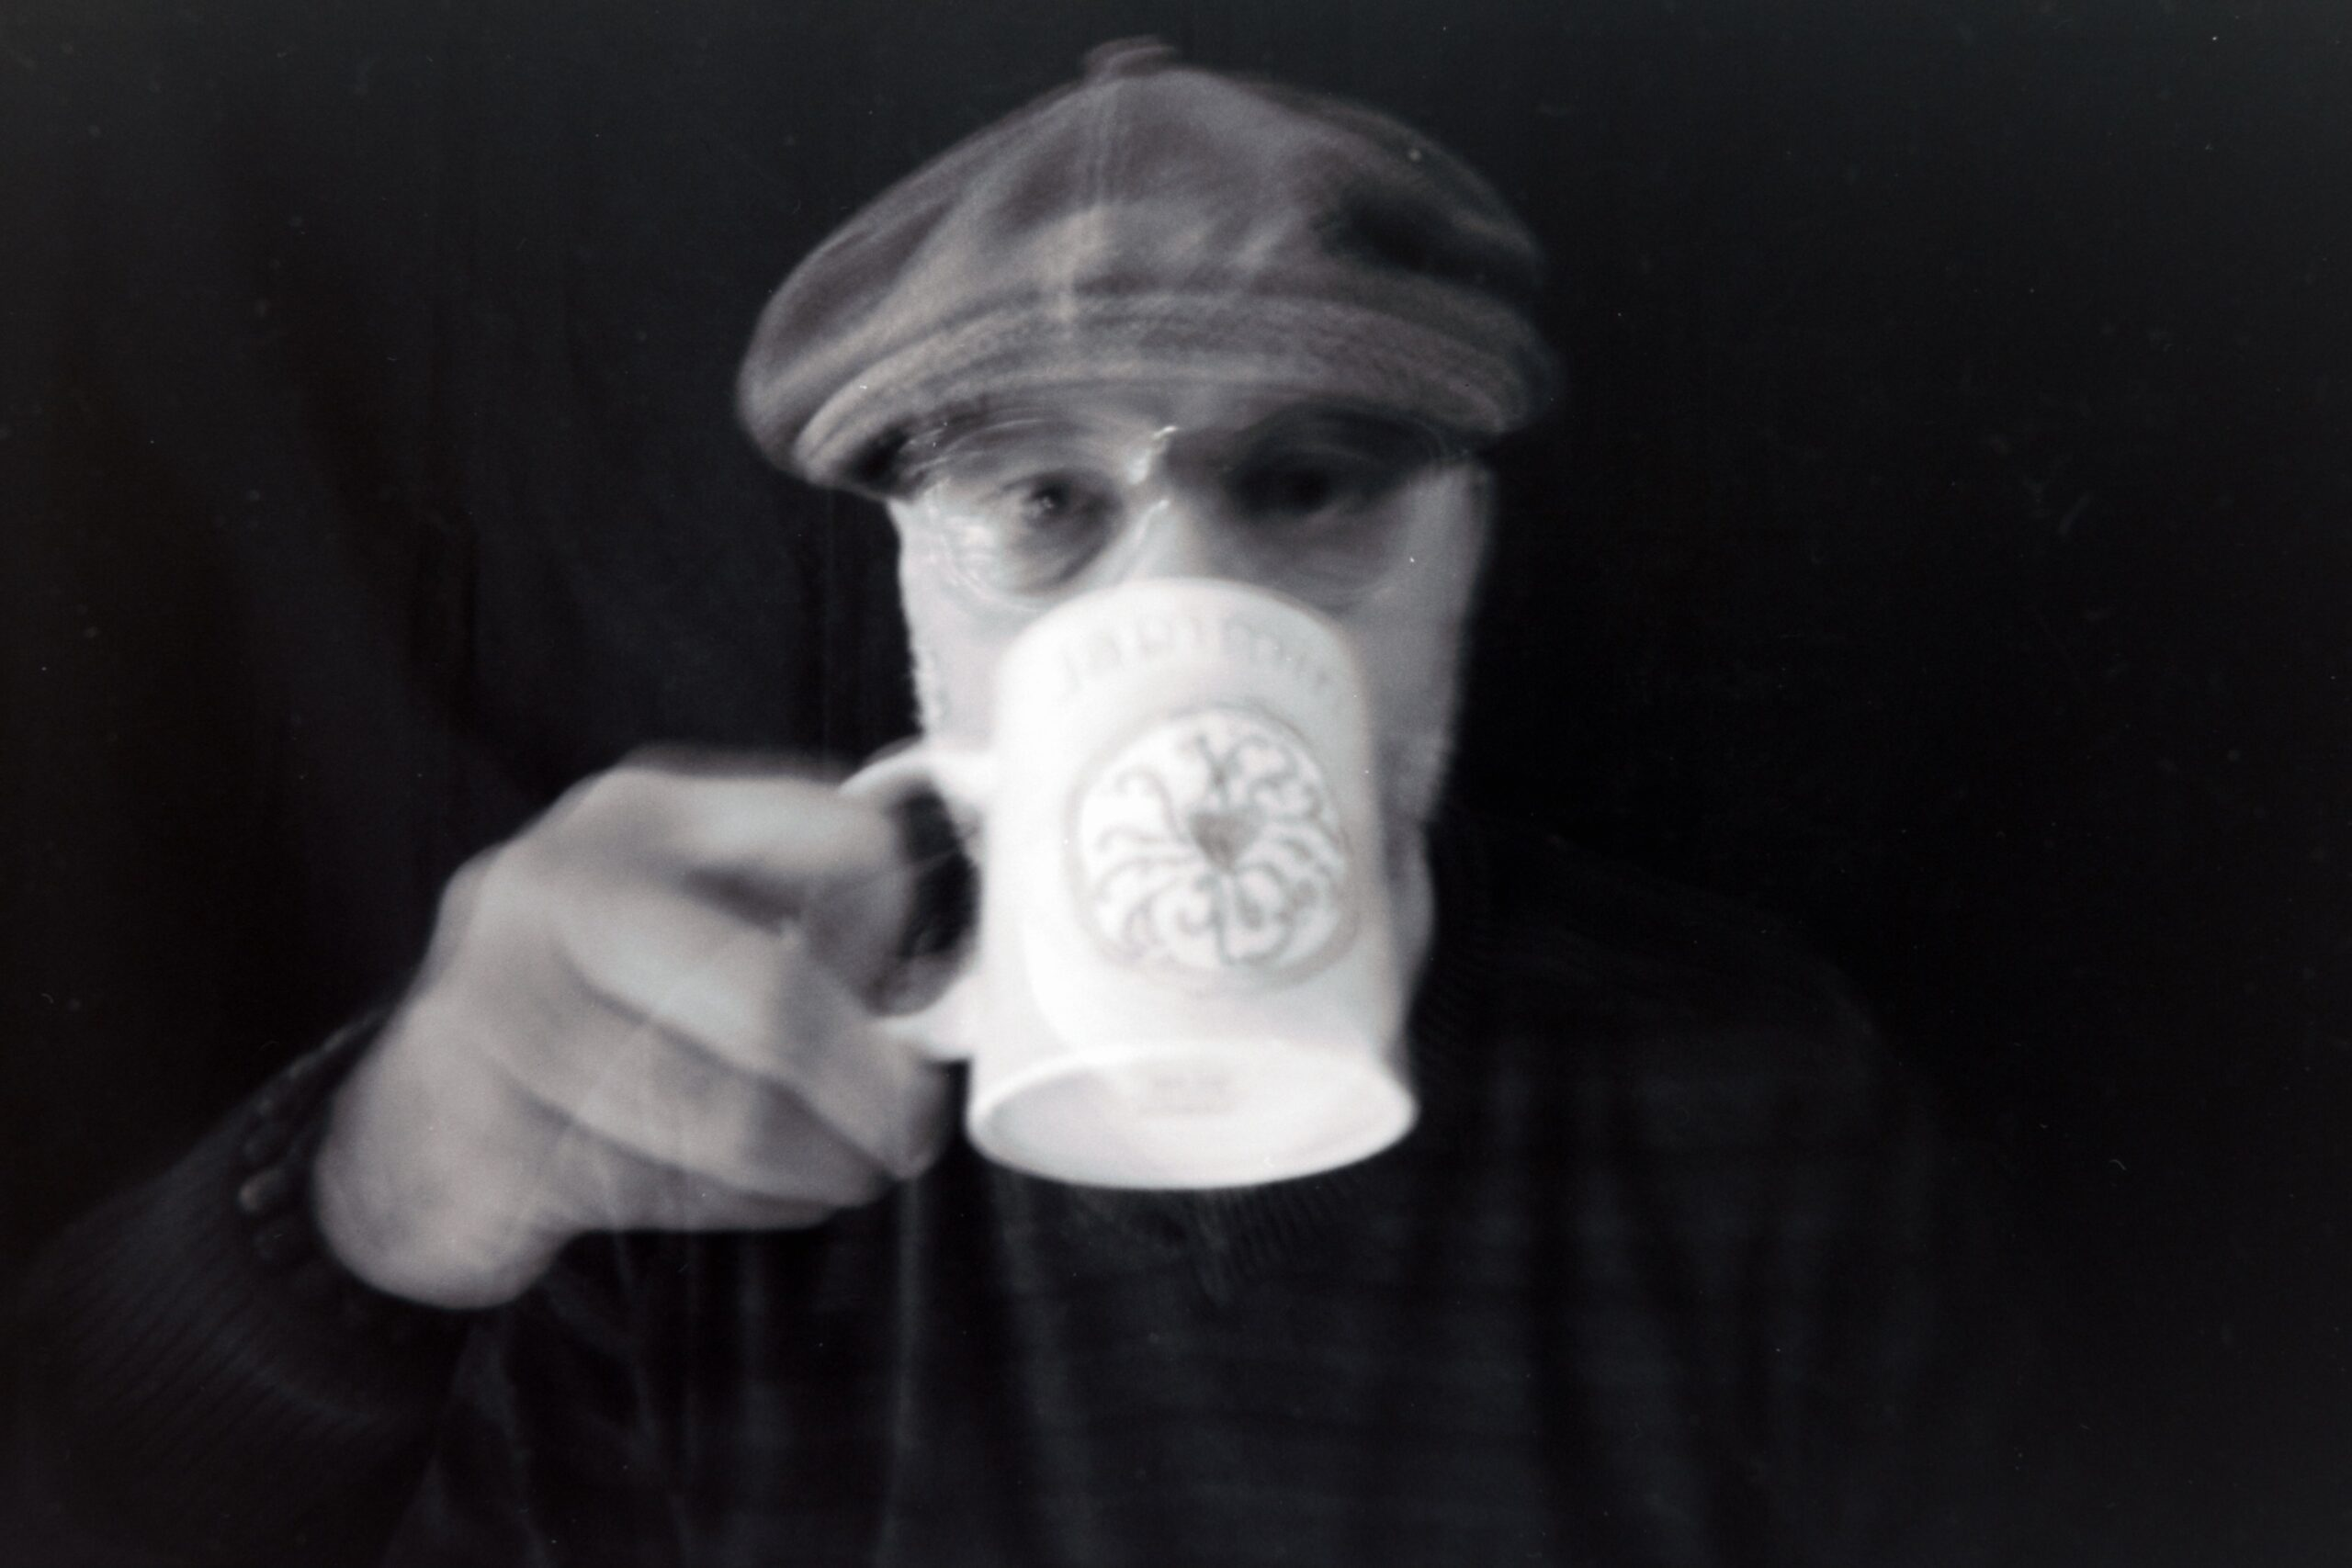 @oldtownpaul · Jun 10 Replying to @ILFORDPhoto One of me shot on FP4 with an @ONDUpinhole 6x9, developed in just expired Ilfosol 3! #meonfilm #fridayfavourites